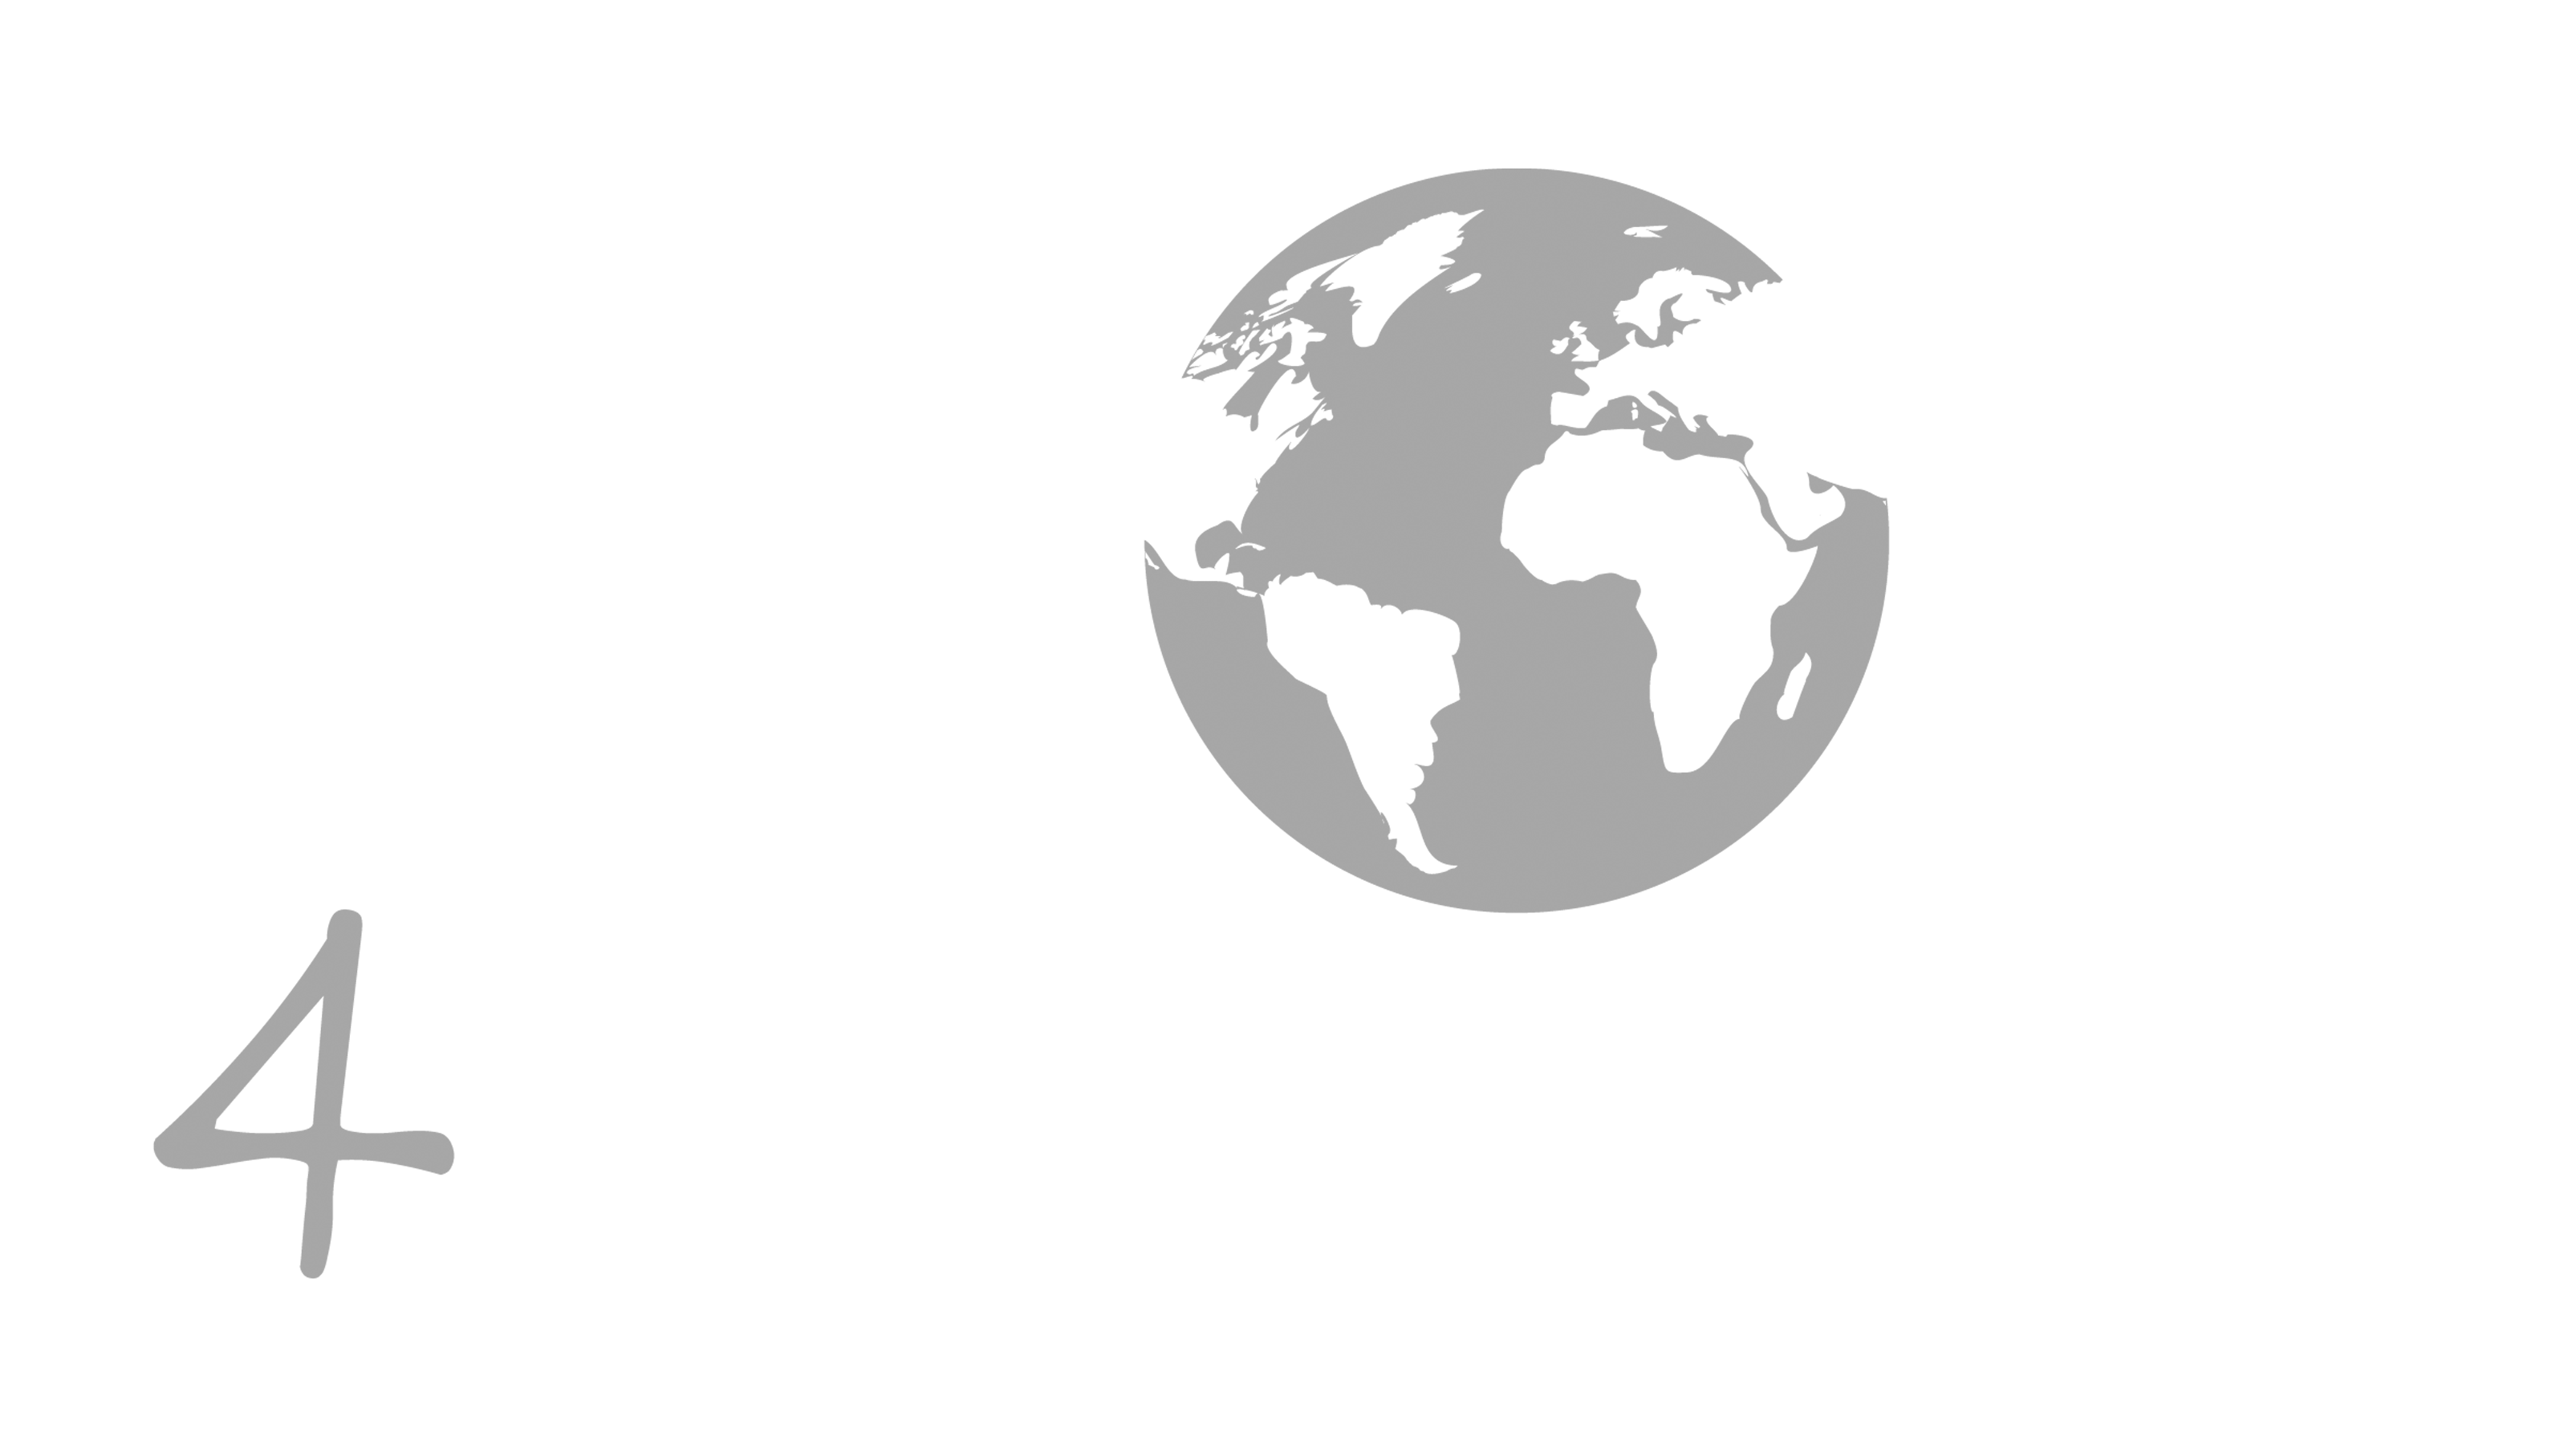 CEO's 4 Climate